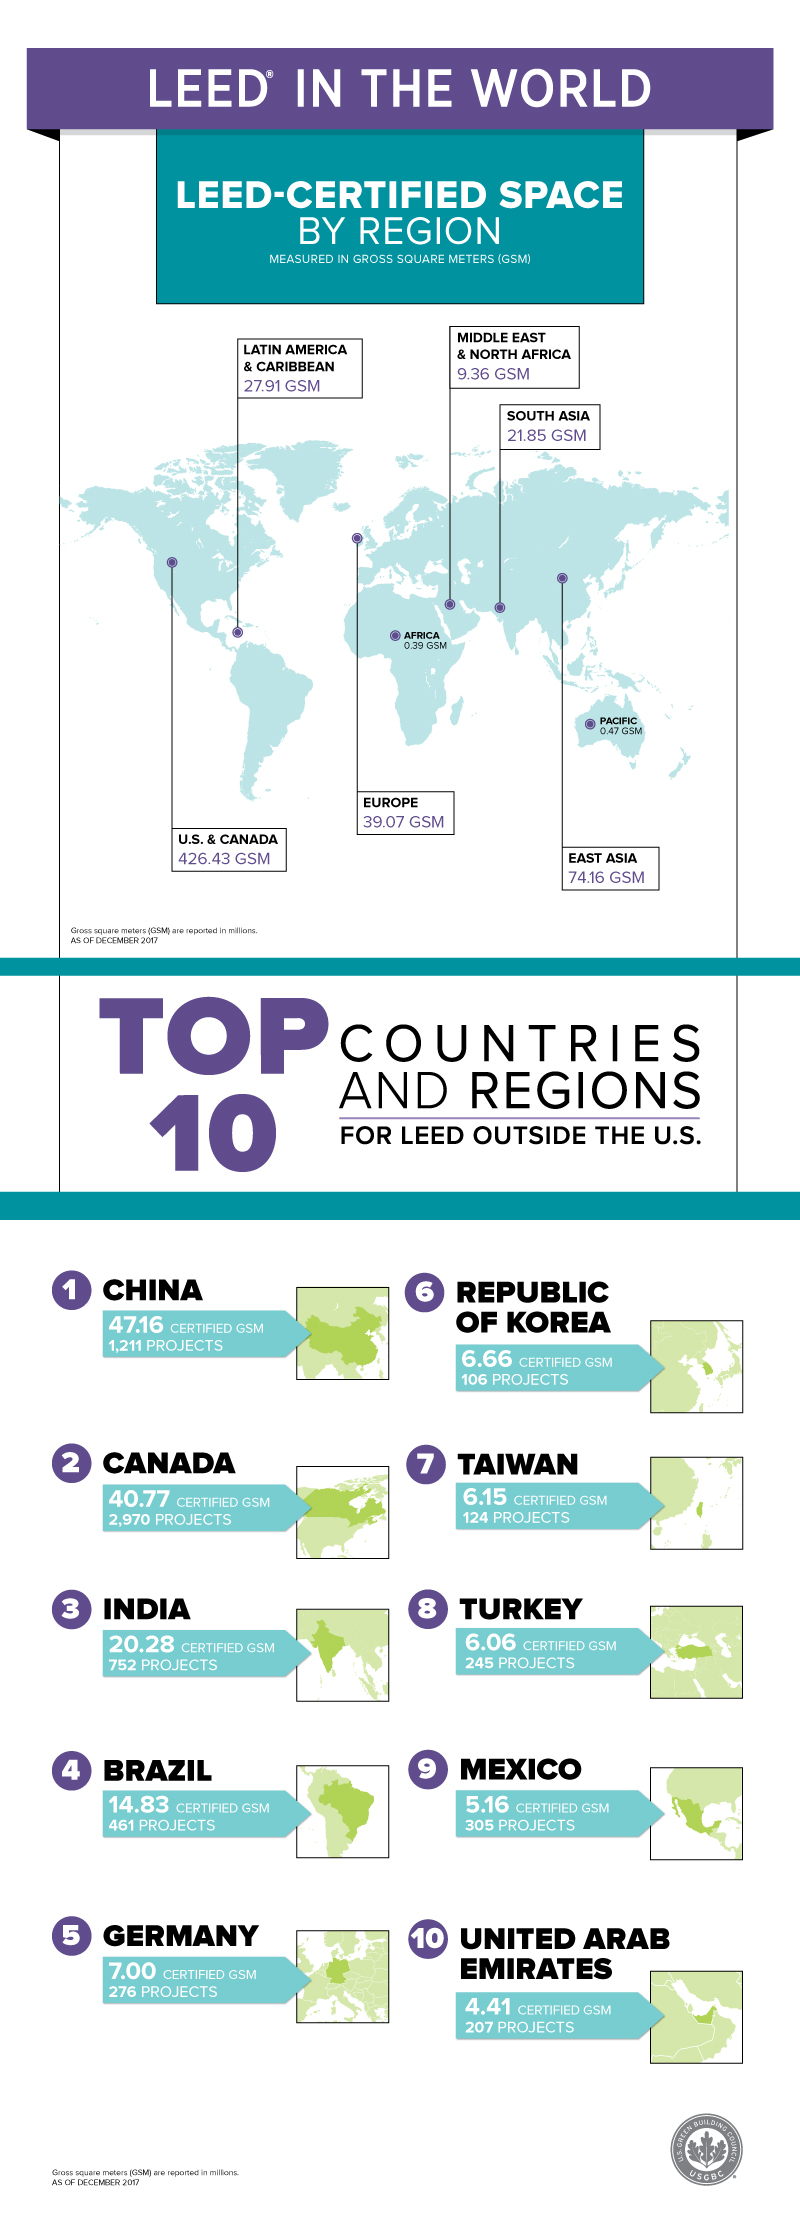 Top 10 countries and regions for LEED in 2017